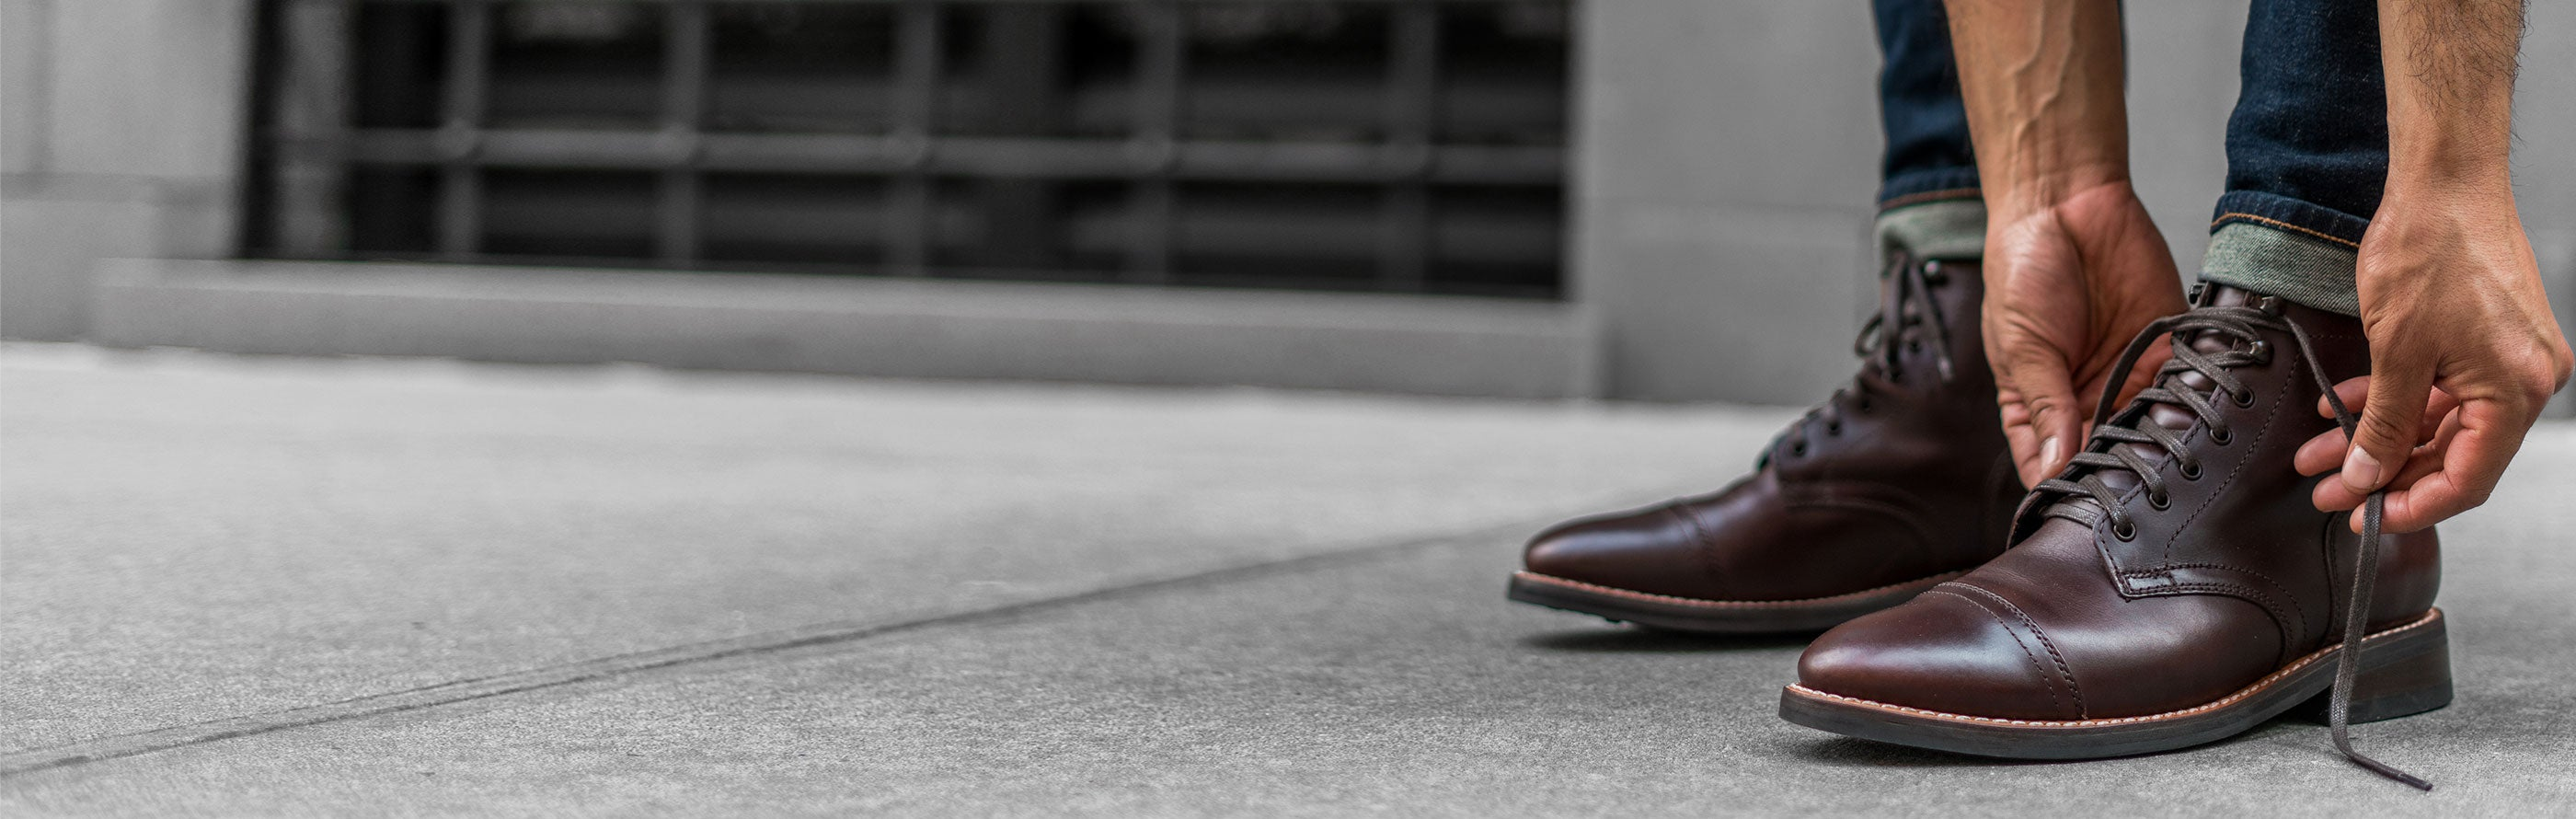 Men's Lace-Up Boots - Thursday Boot Company